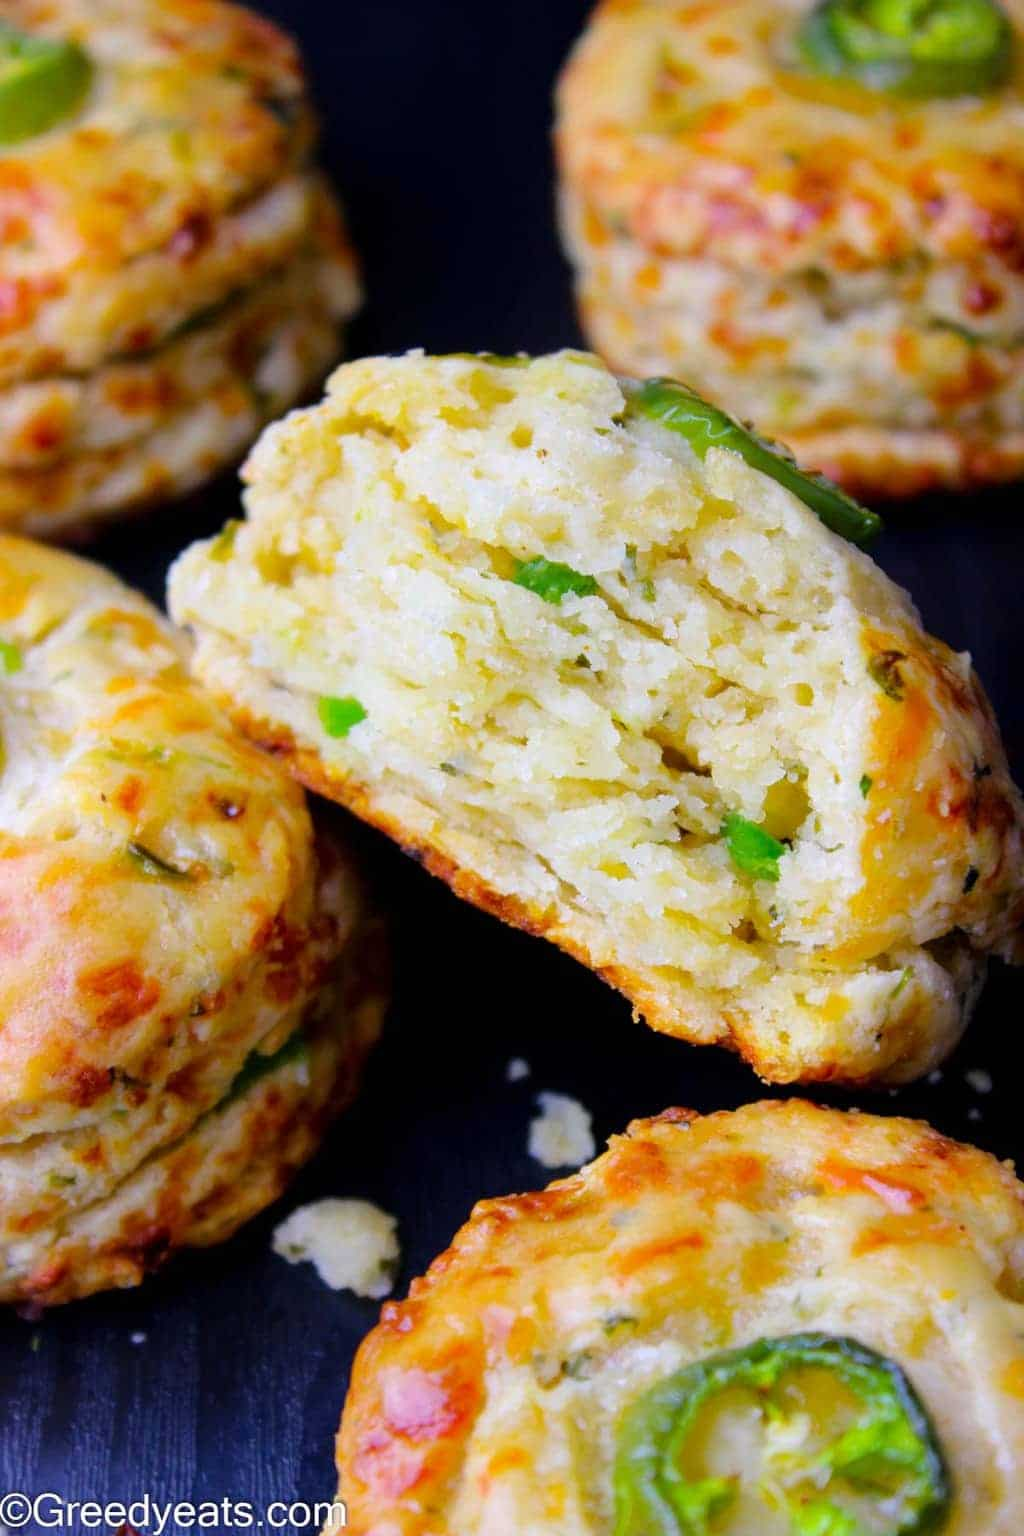 Tall and flaky Jalapeno Cheddar Biscuits recipe made with buttermilk, some garlic powder, fresh jalapeno peppers and cheddar cheese.